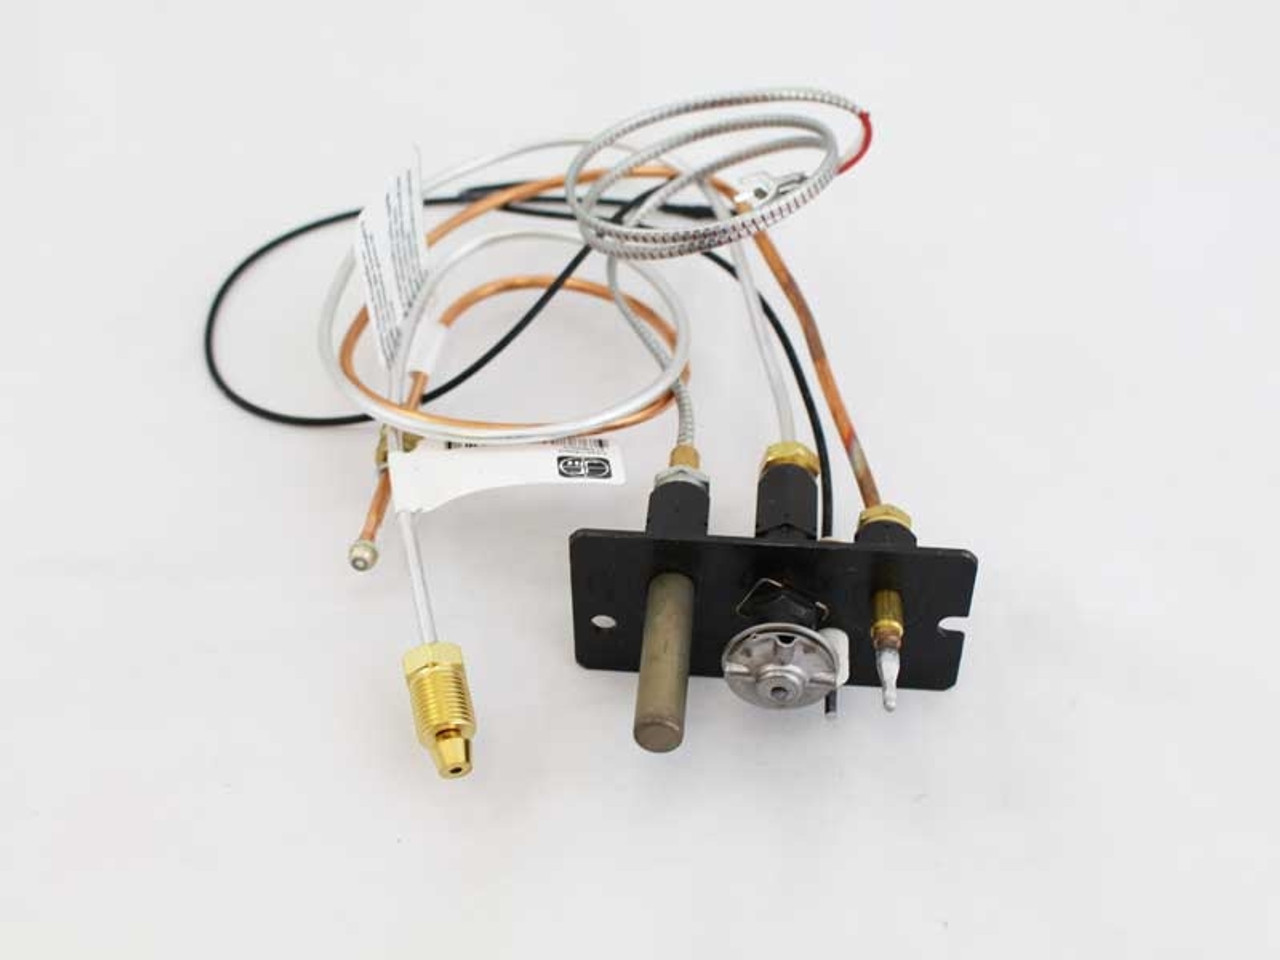 10002265 2__65708.1493888200?c=2 assembly lp for majestic gas stoves (10002265) majestic 36bdvr en wiring diagram at metegol.co